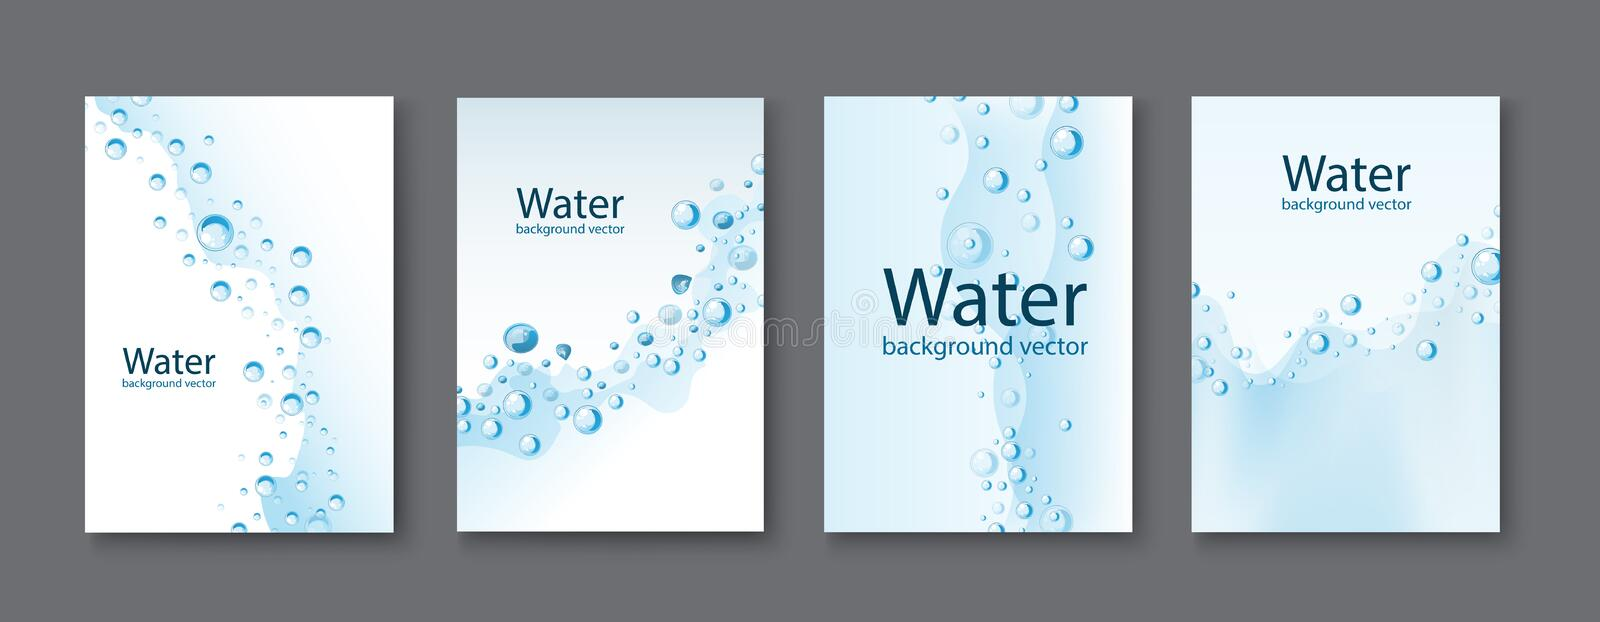 Abstract Water transparent drops backgrounds.vector. Abstract Water transparent drops a4 backgrounds.vector illustrations royalty free illustration